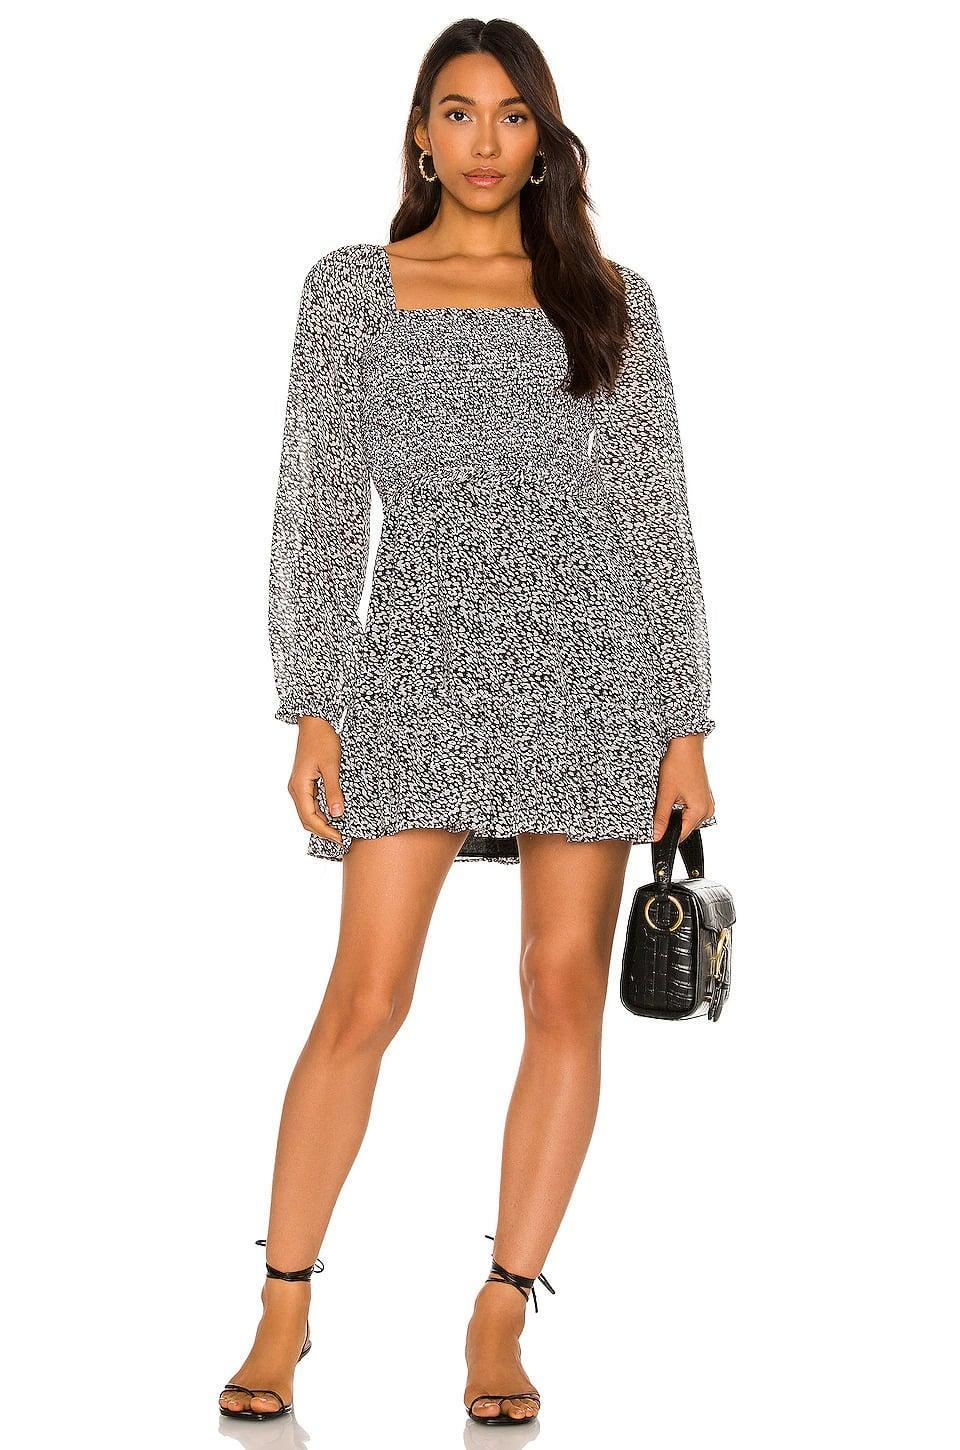 <p>We love this flattering and flowy <span>1. STATE Smocked Ruffle Dress in Black &amp; White</span> ($99). It's such a cute dress for brunch or even a date!</p>